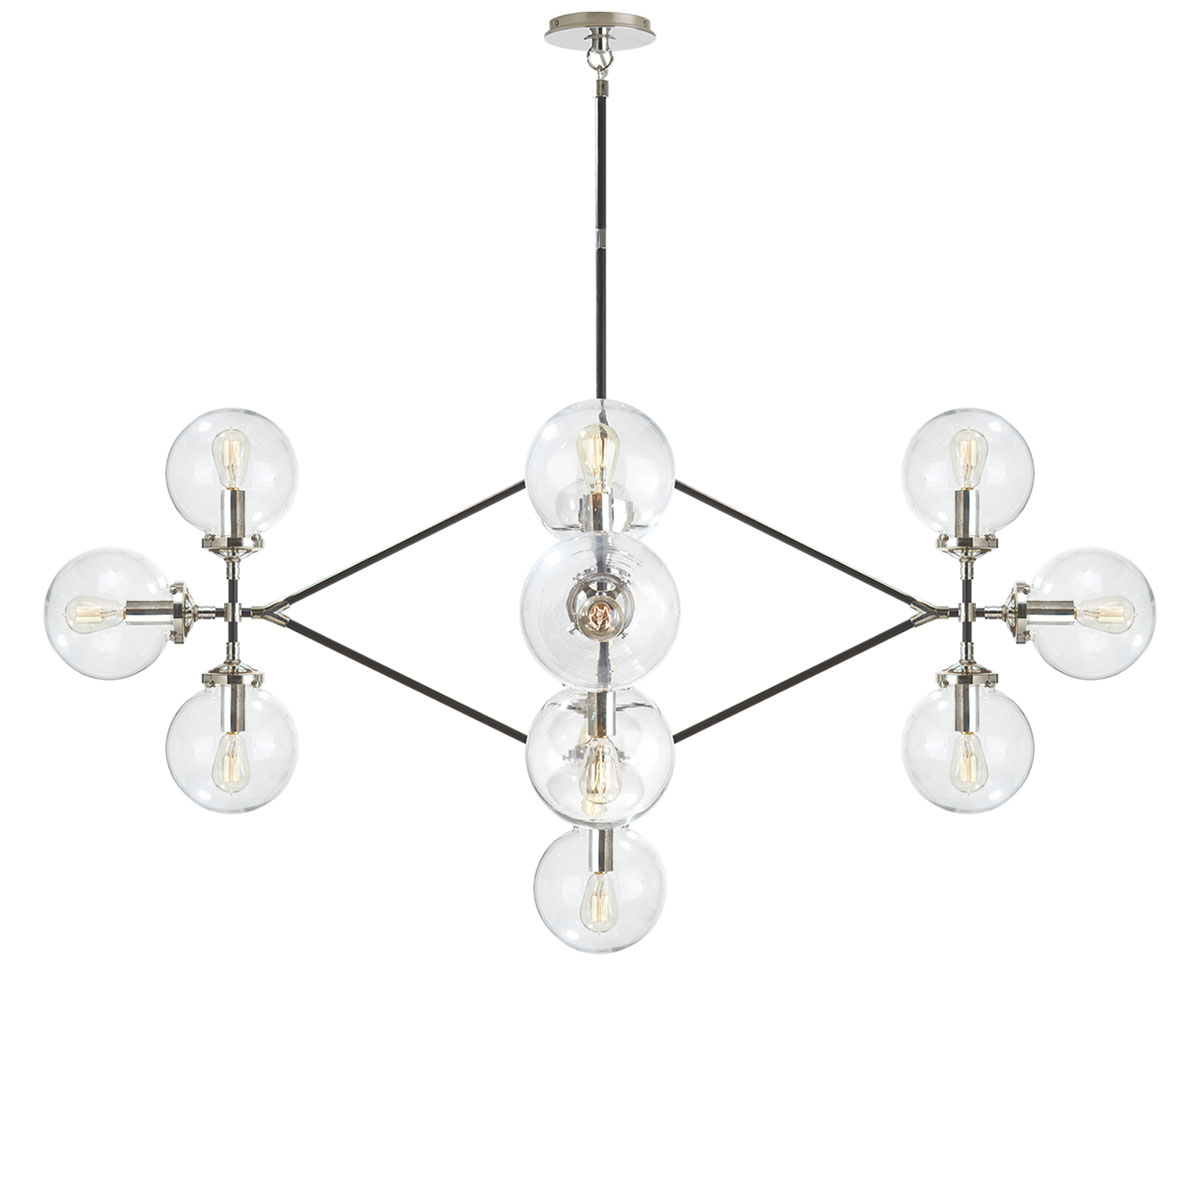 Visual comfort bistro four arm chandelier chandelier neenas lighting polished nickel and black finish clear glass shade chevronleft bistro four arm chandelier aloadofball Image collections